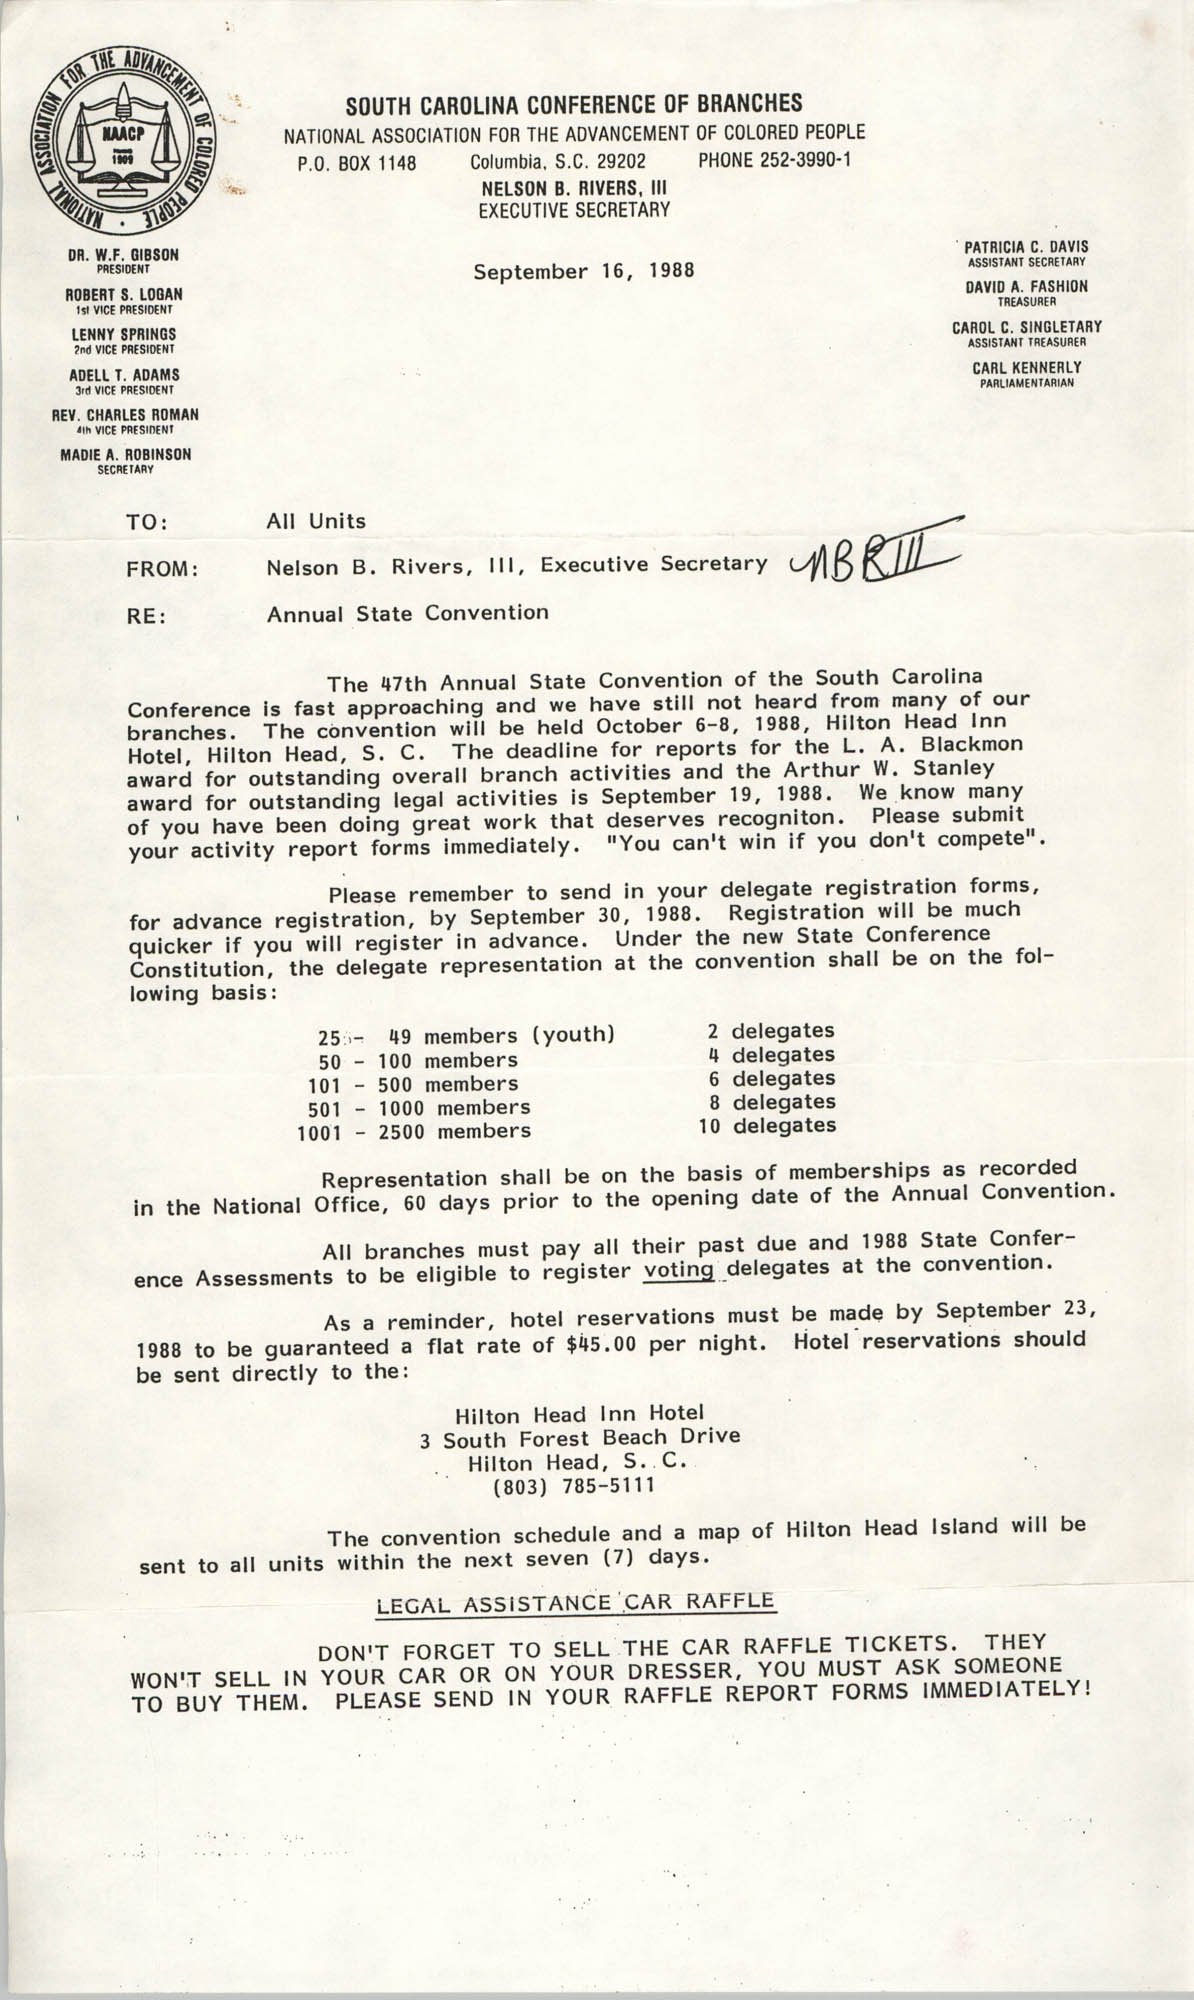 South Carolina Conference of Branches of the NAACP Memorandum, September 16, 1988